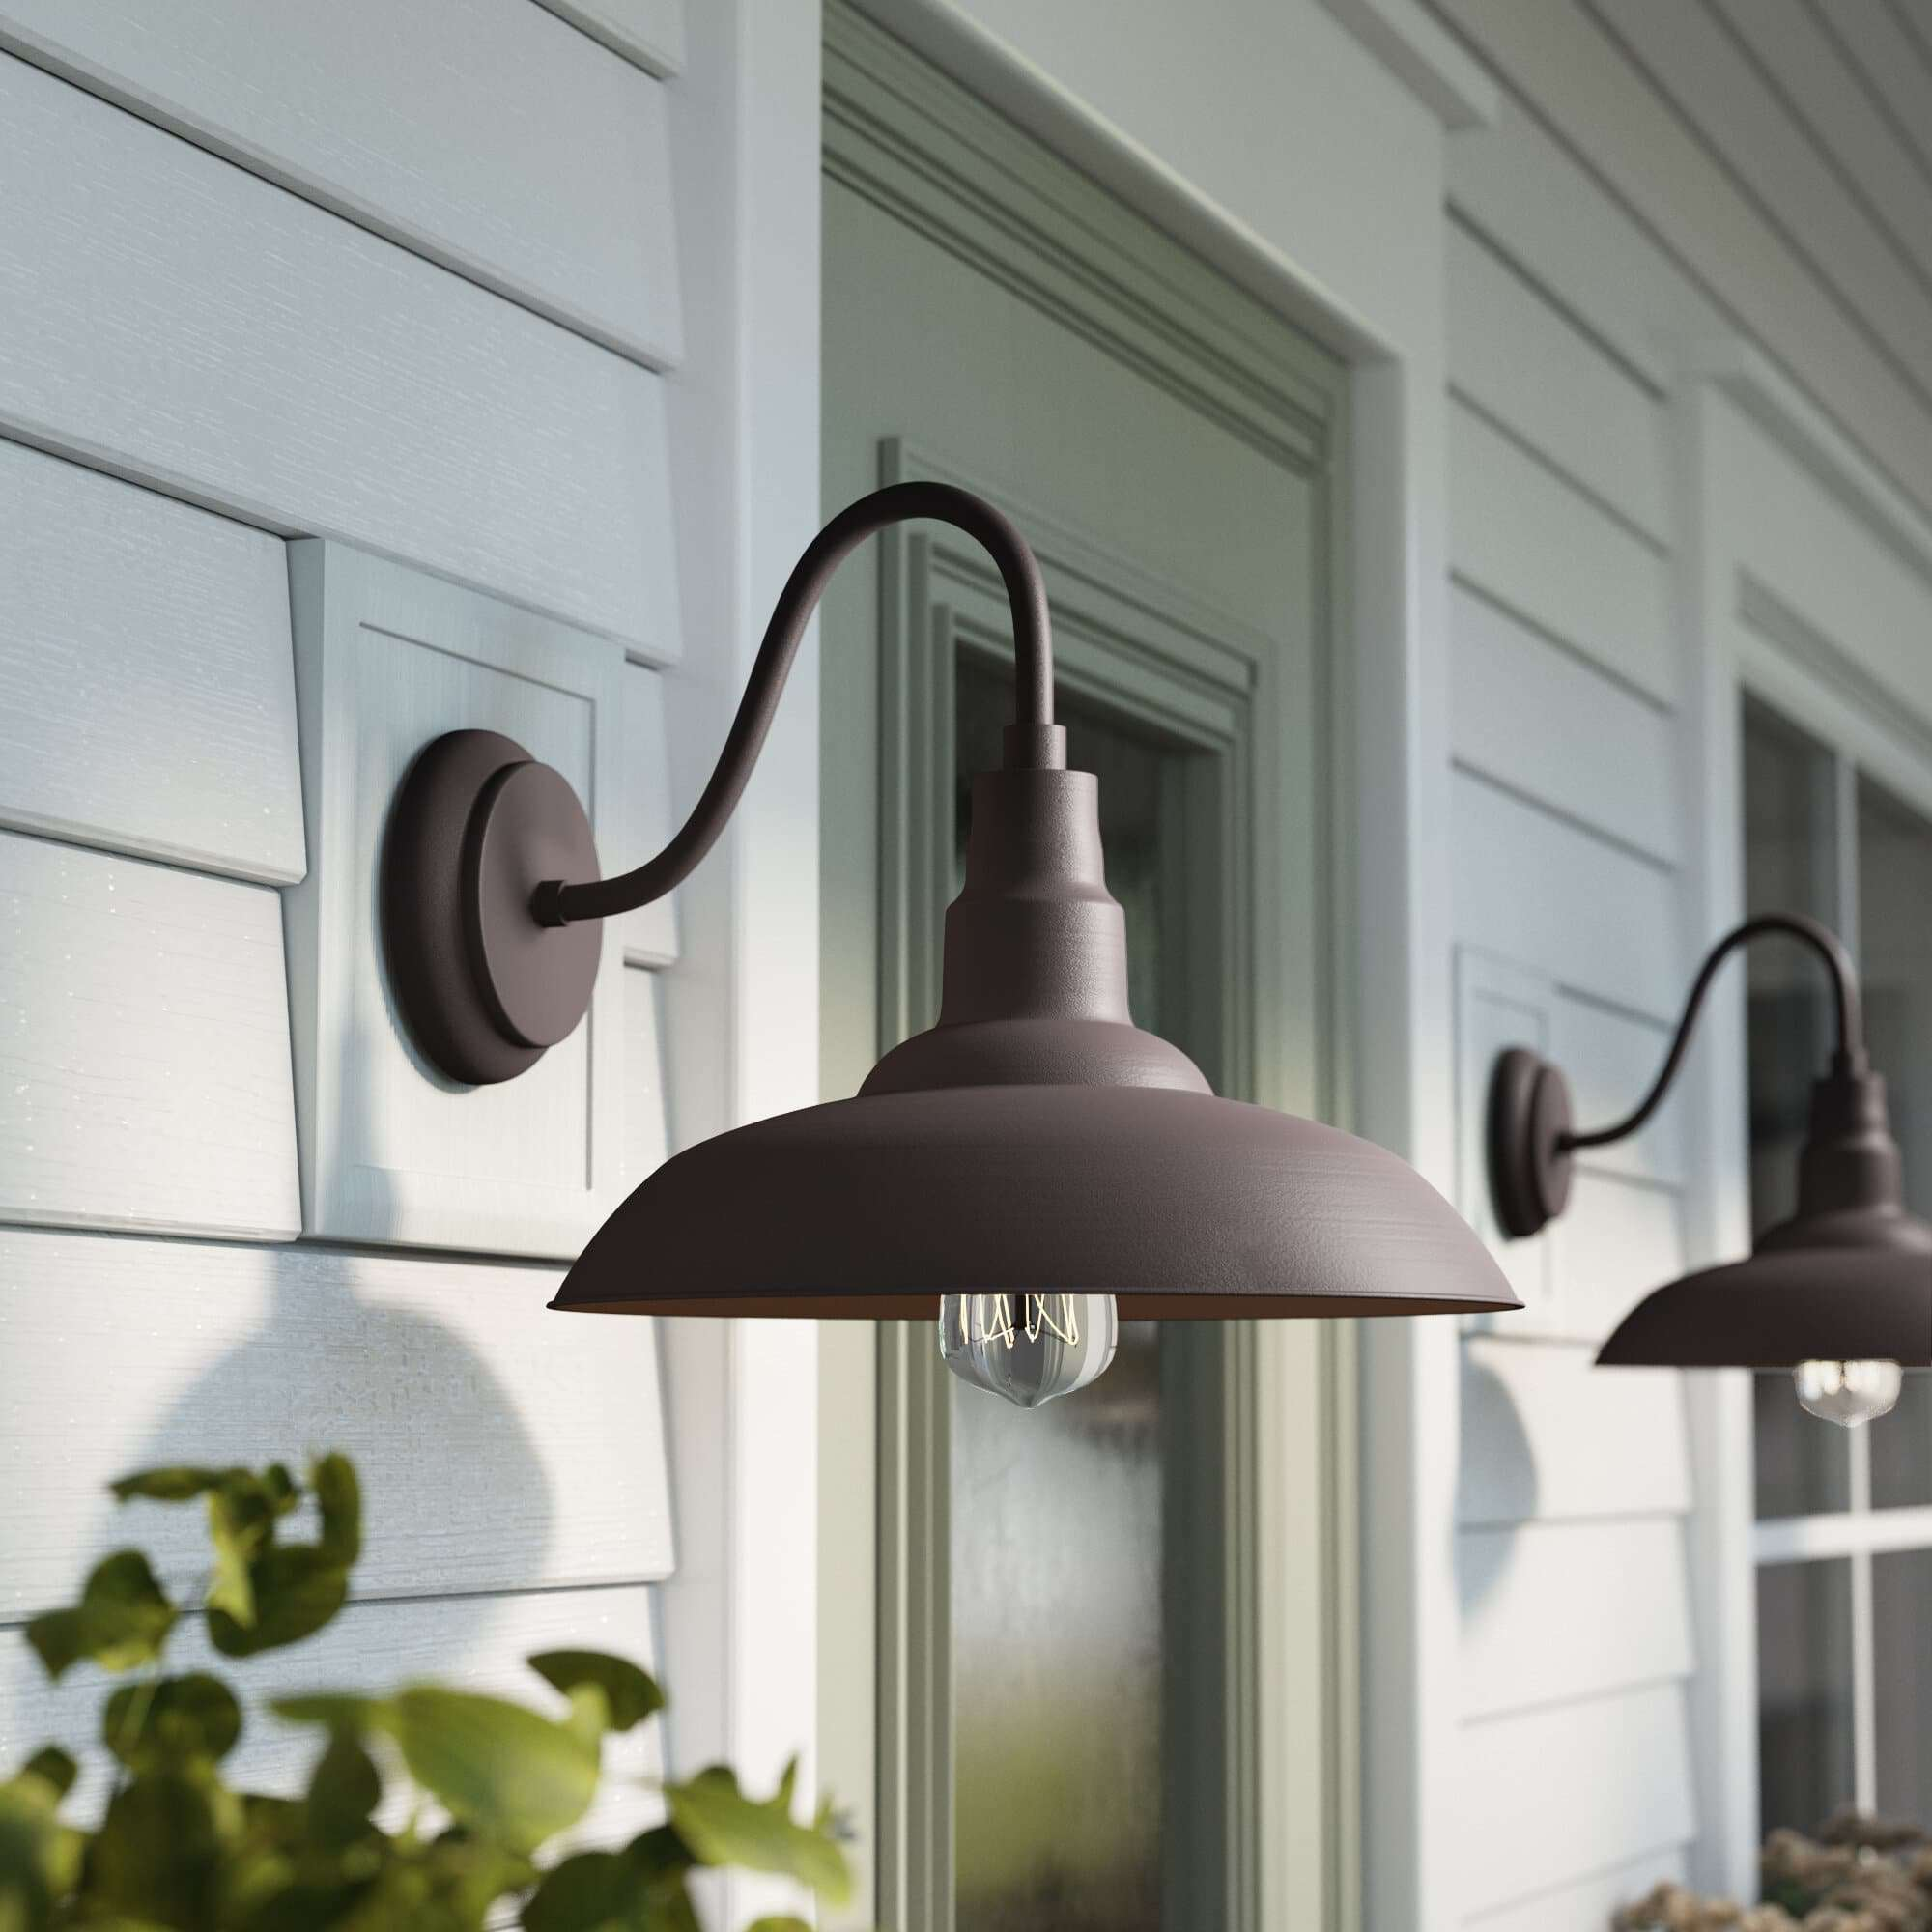 gooseneck-barn-light-led-black-outdoor-indoor-8